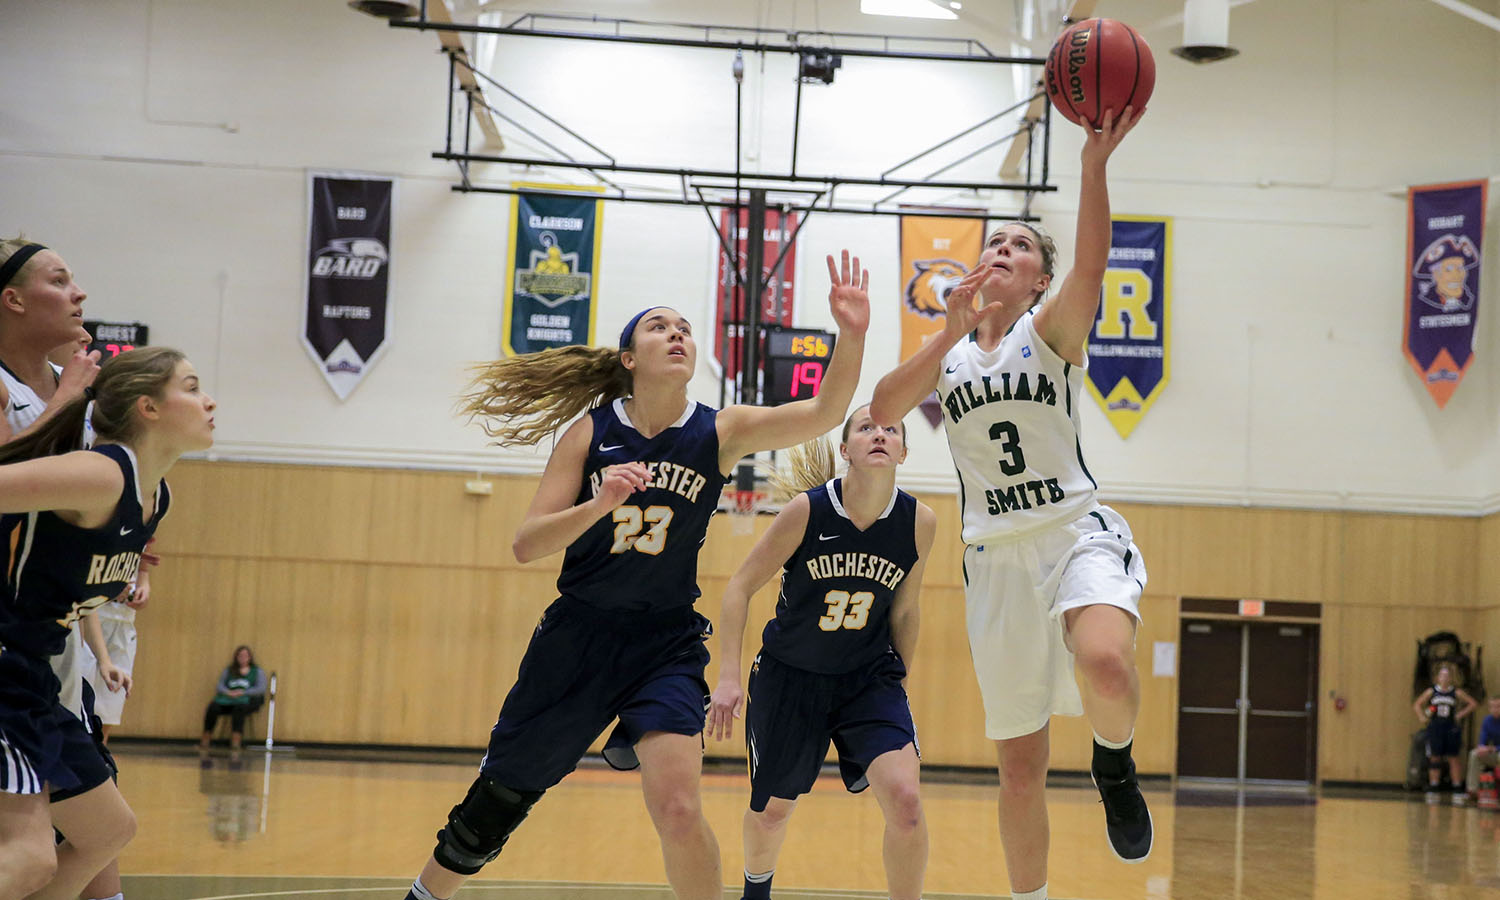 Adrianne Torea '19 finishes with a layup during William Smith's game against the University of Rochester.